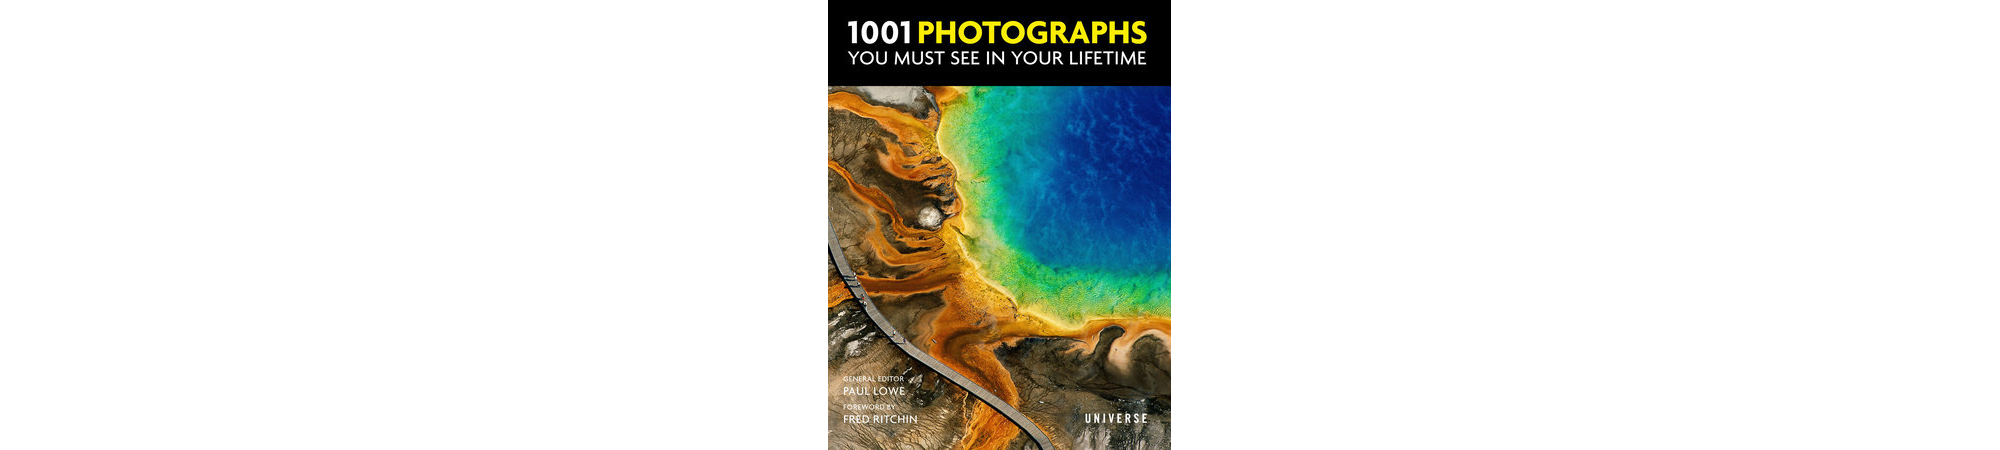 1001 Photographs You Must See In Your Lifetime by Paul Lowe